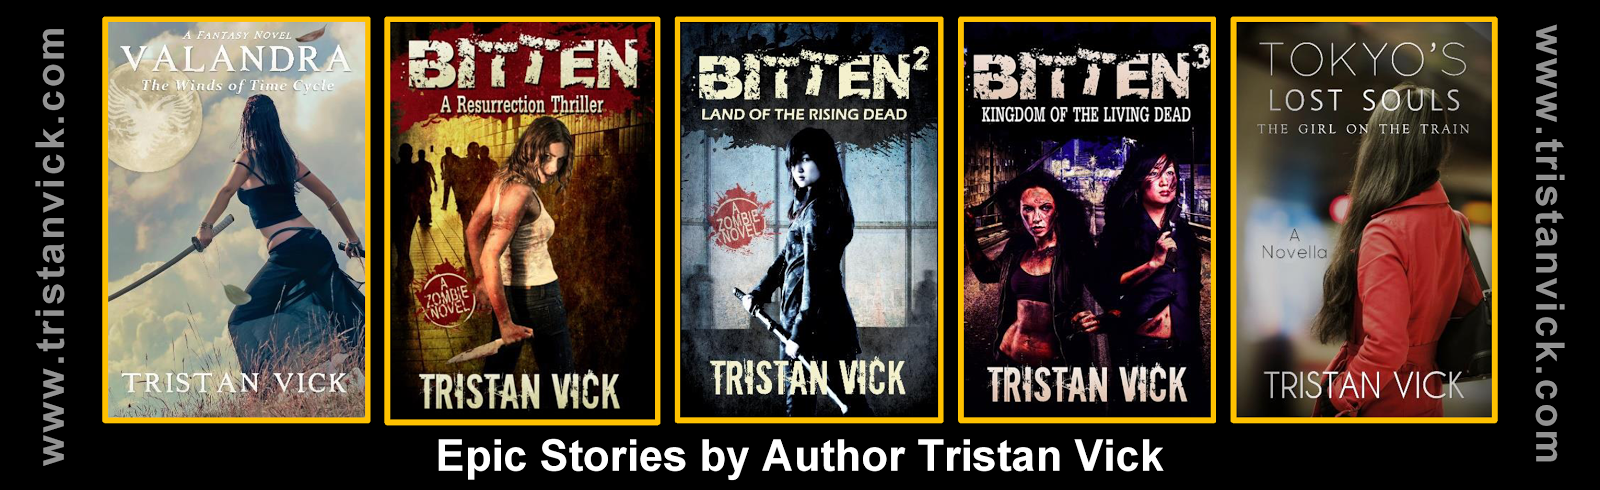 TRISTAN VICK'S AUTHOR WEBSITE